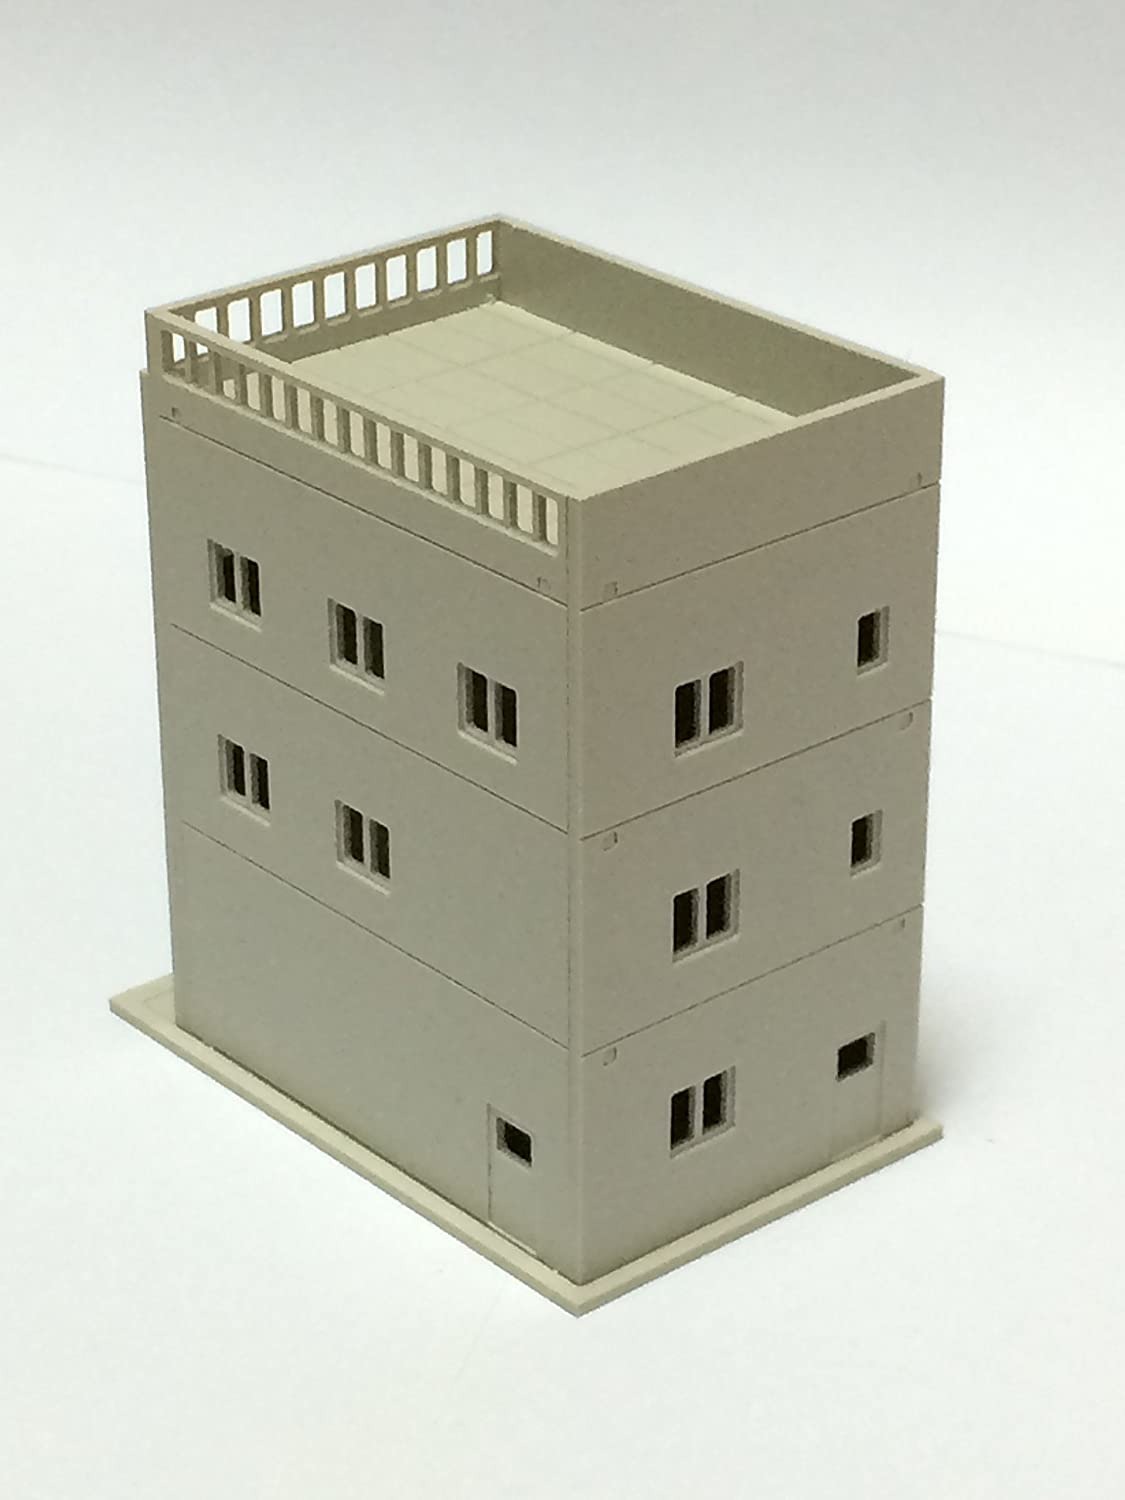 N Scale 1:160 Outland Building Model 3 Story Dress Store Outland Building Model